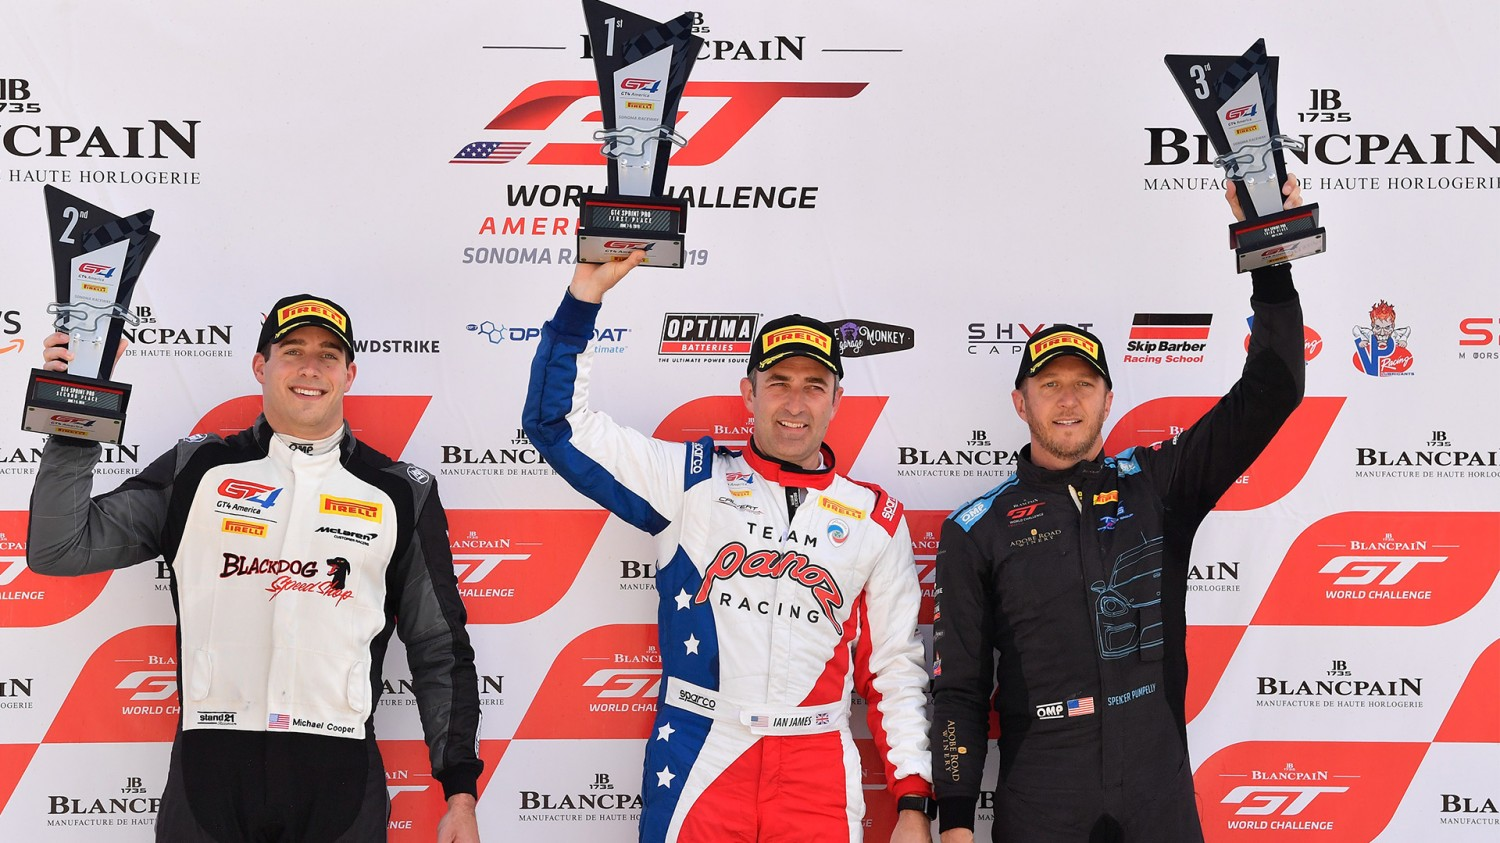 James Controls Race 2 to Win Round 9 of Pirelli GT4 America Sprint Season; Staveley Sweeps In Am